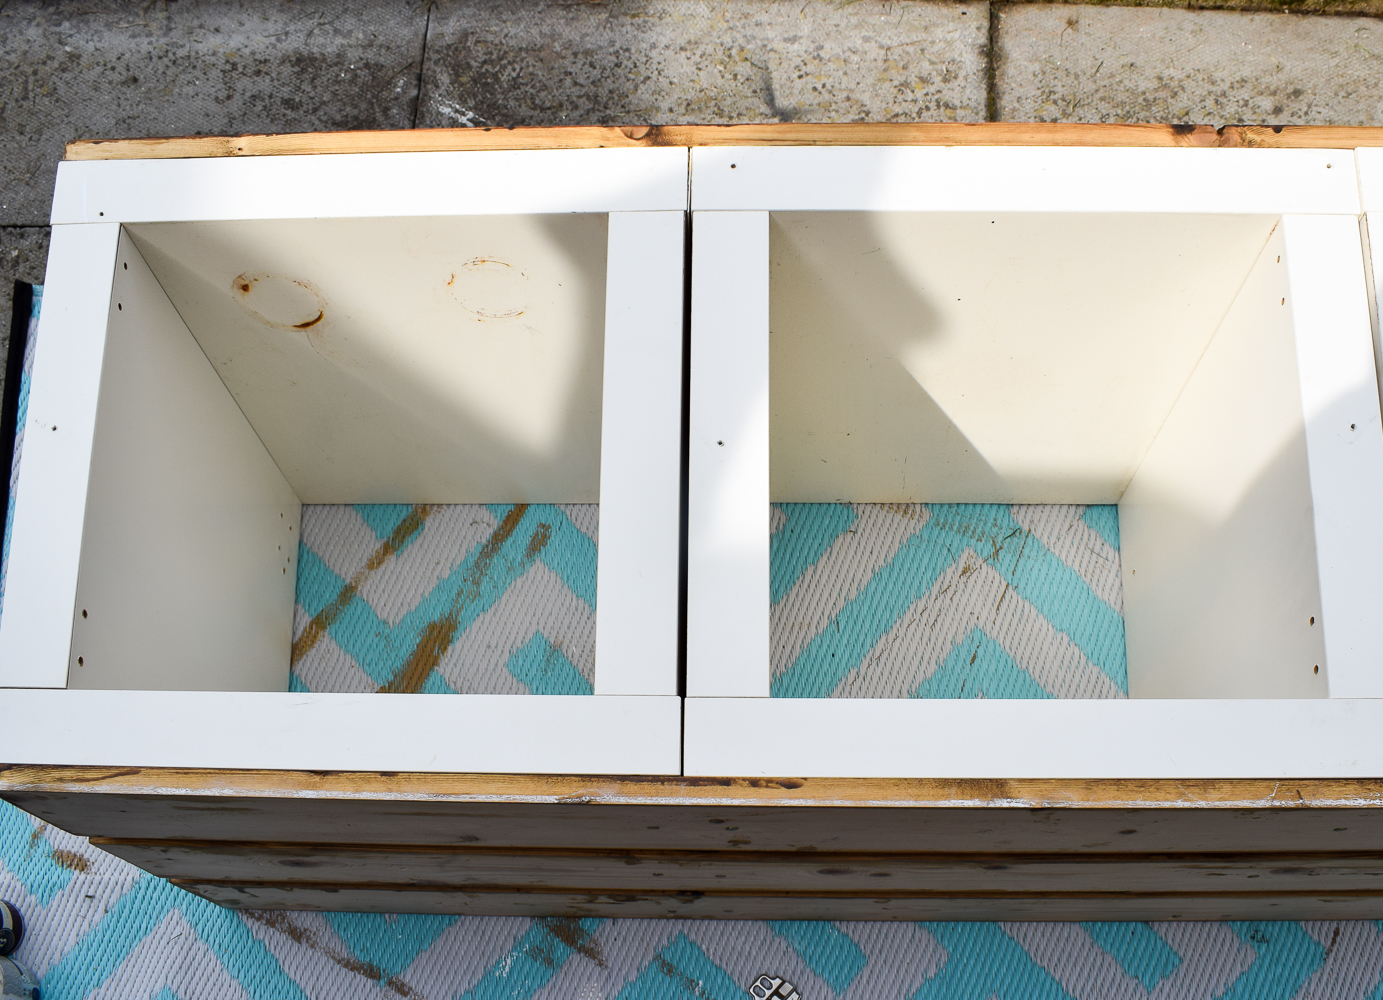 wooden planks applied to bottom and top of the ikea kallax units